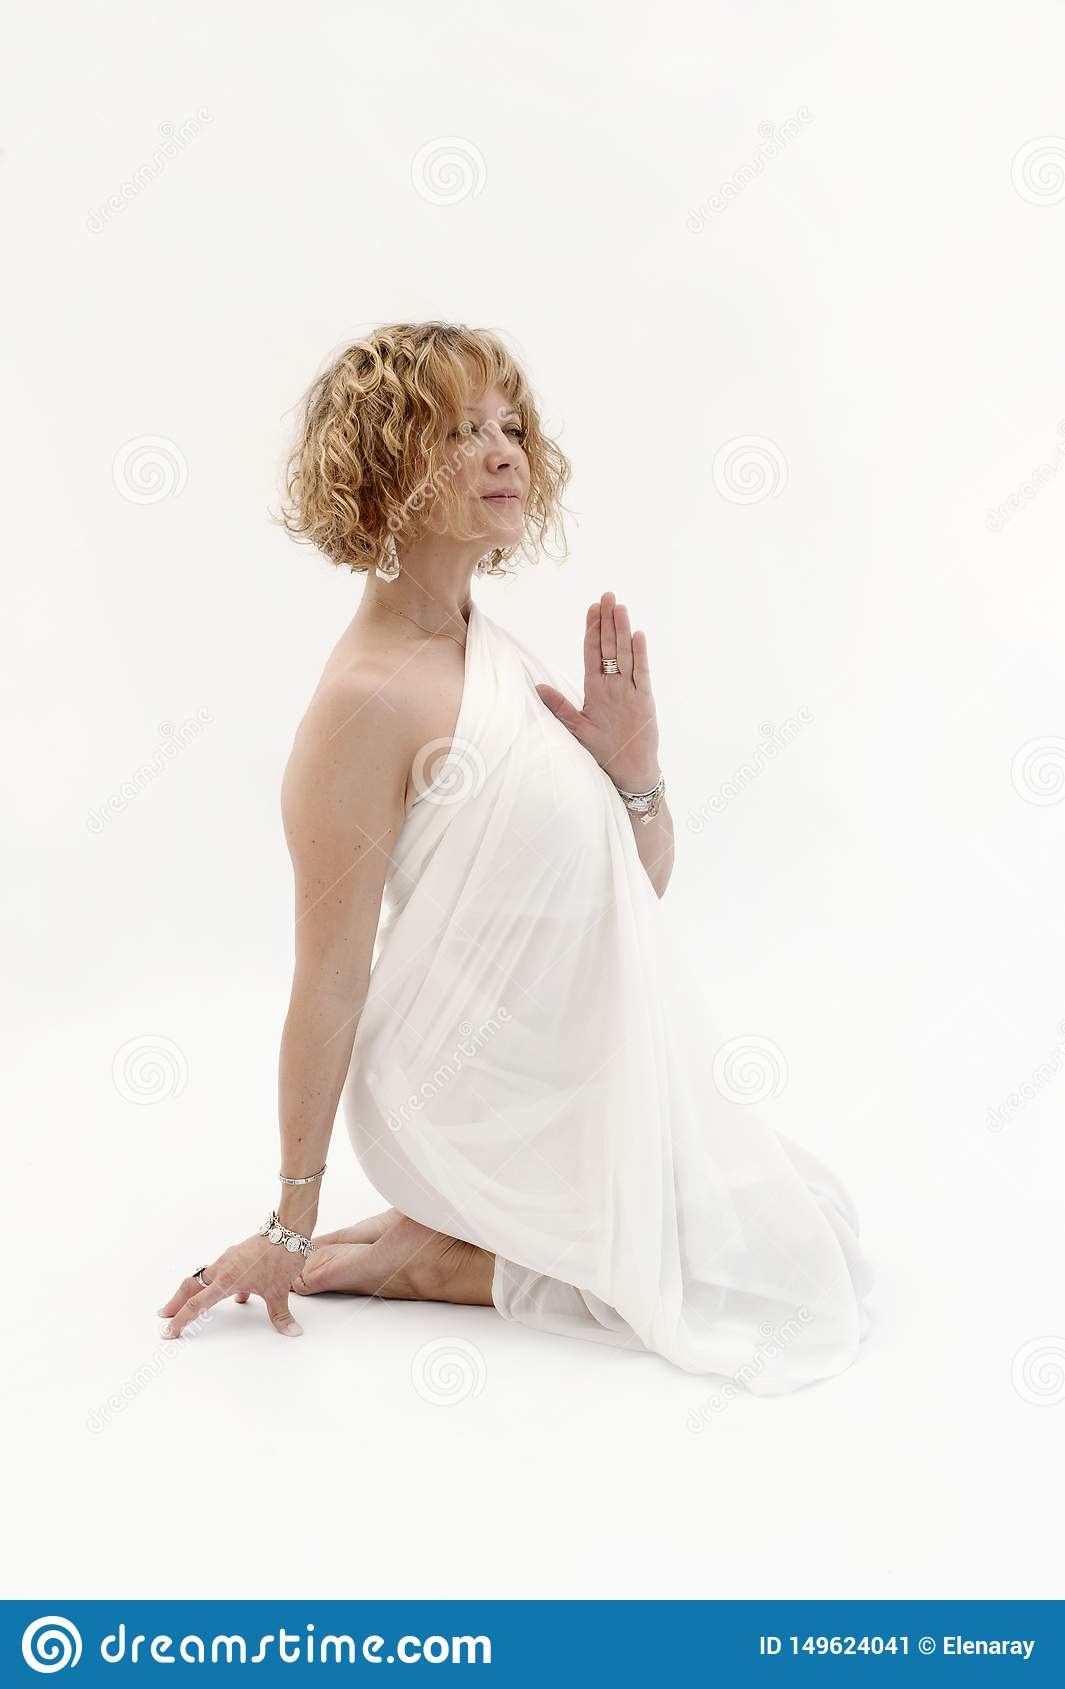 Self Empowerment Woman Priestess Portrait Stock Image